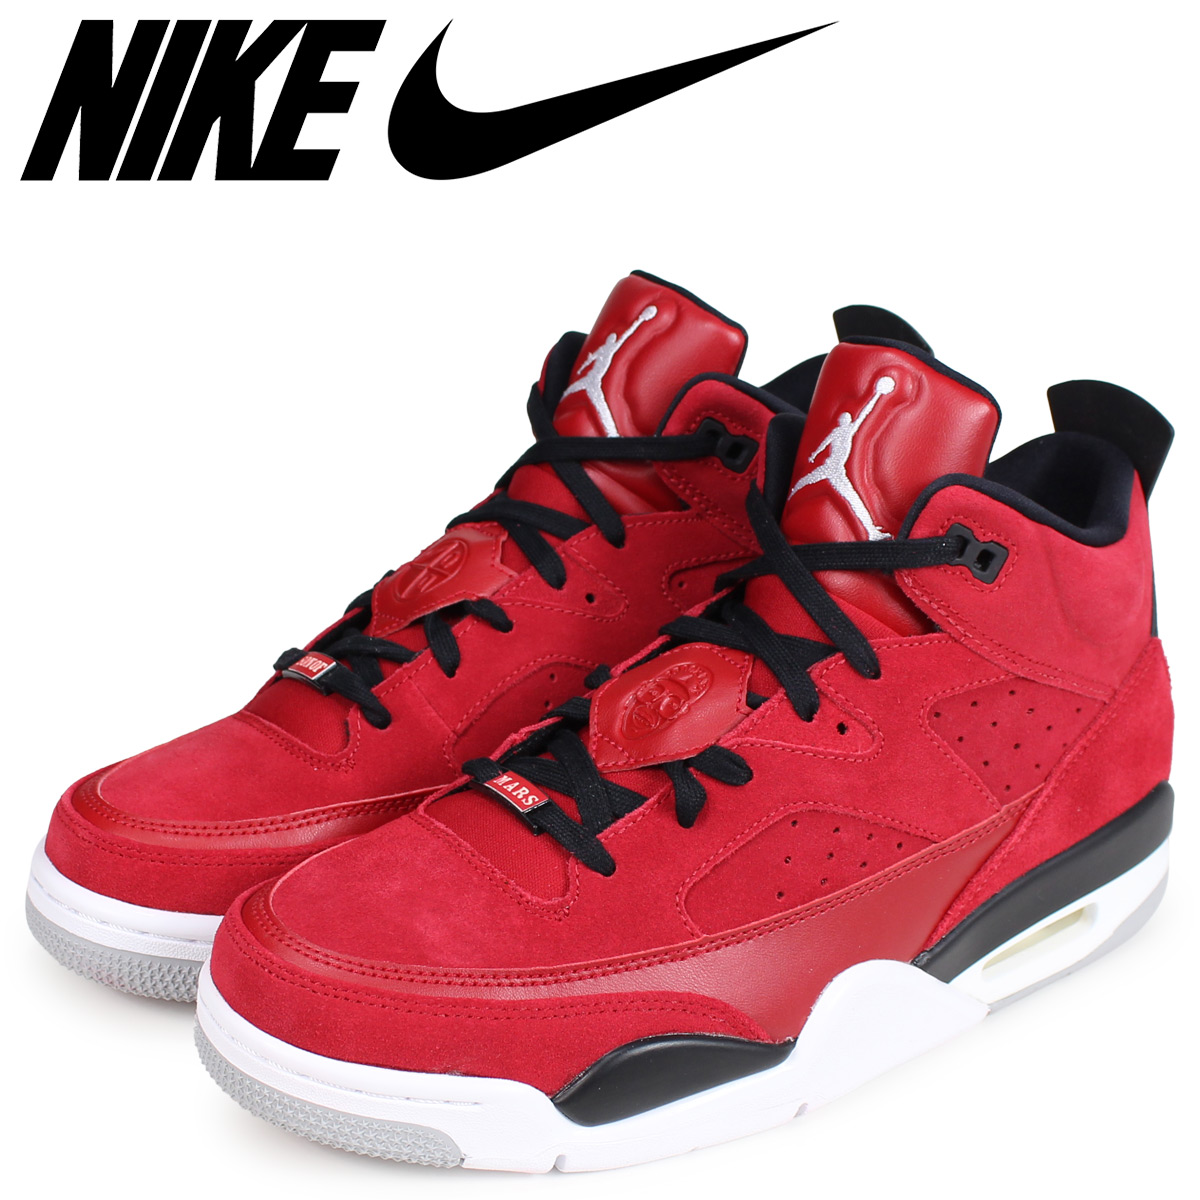 the best attitude c7d3a ba17f NIKE Nike Jordan sneakers men JORDAN SON OF LOW red 580,603-603  load  planned Shinnyu load in reservation product 12 25 containing